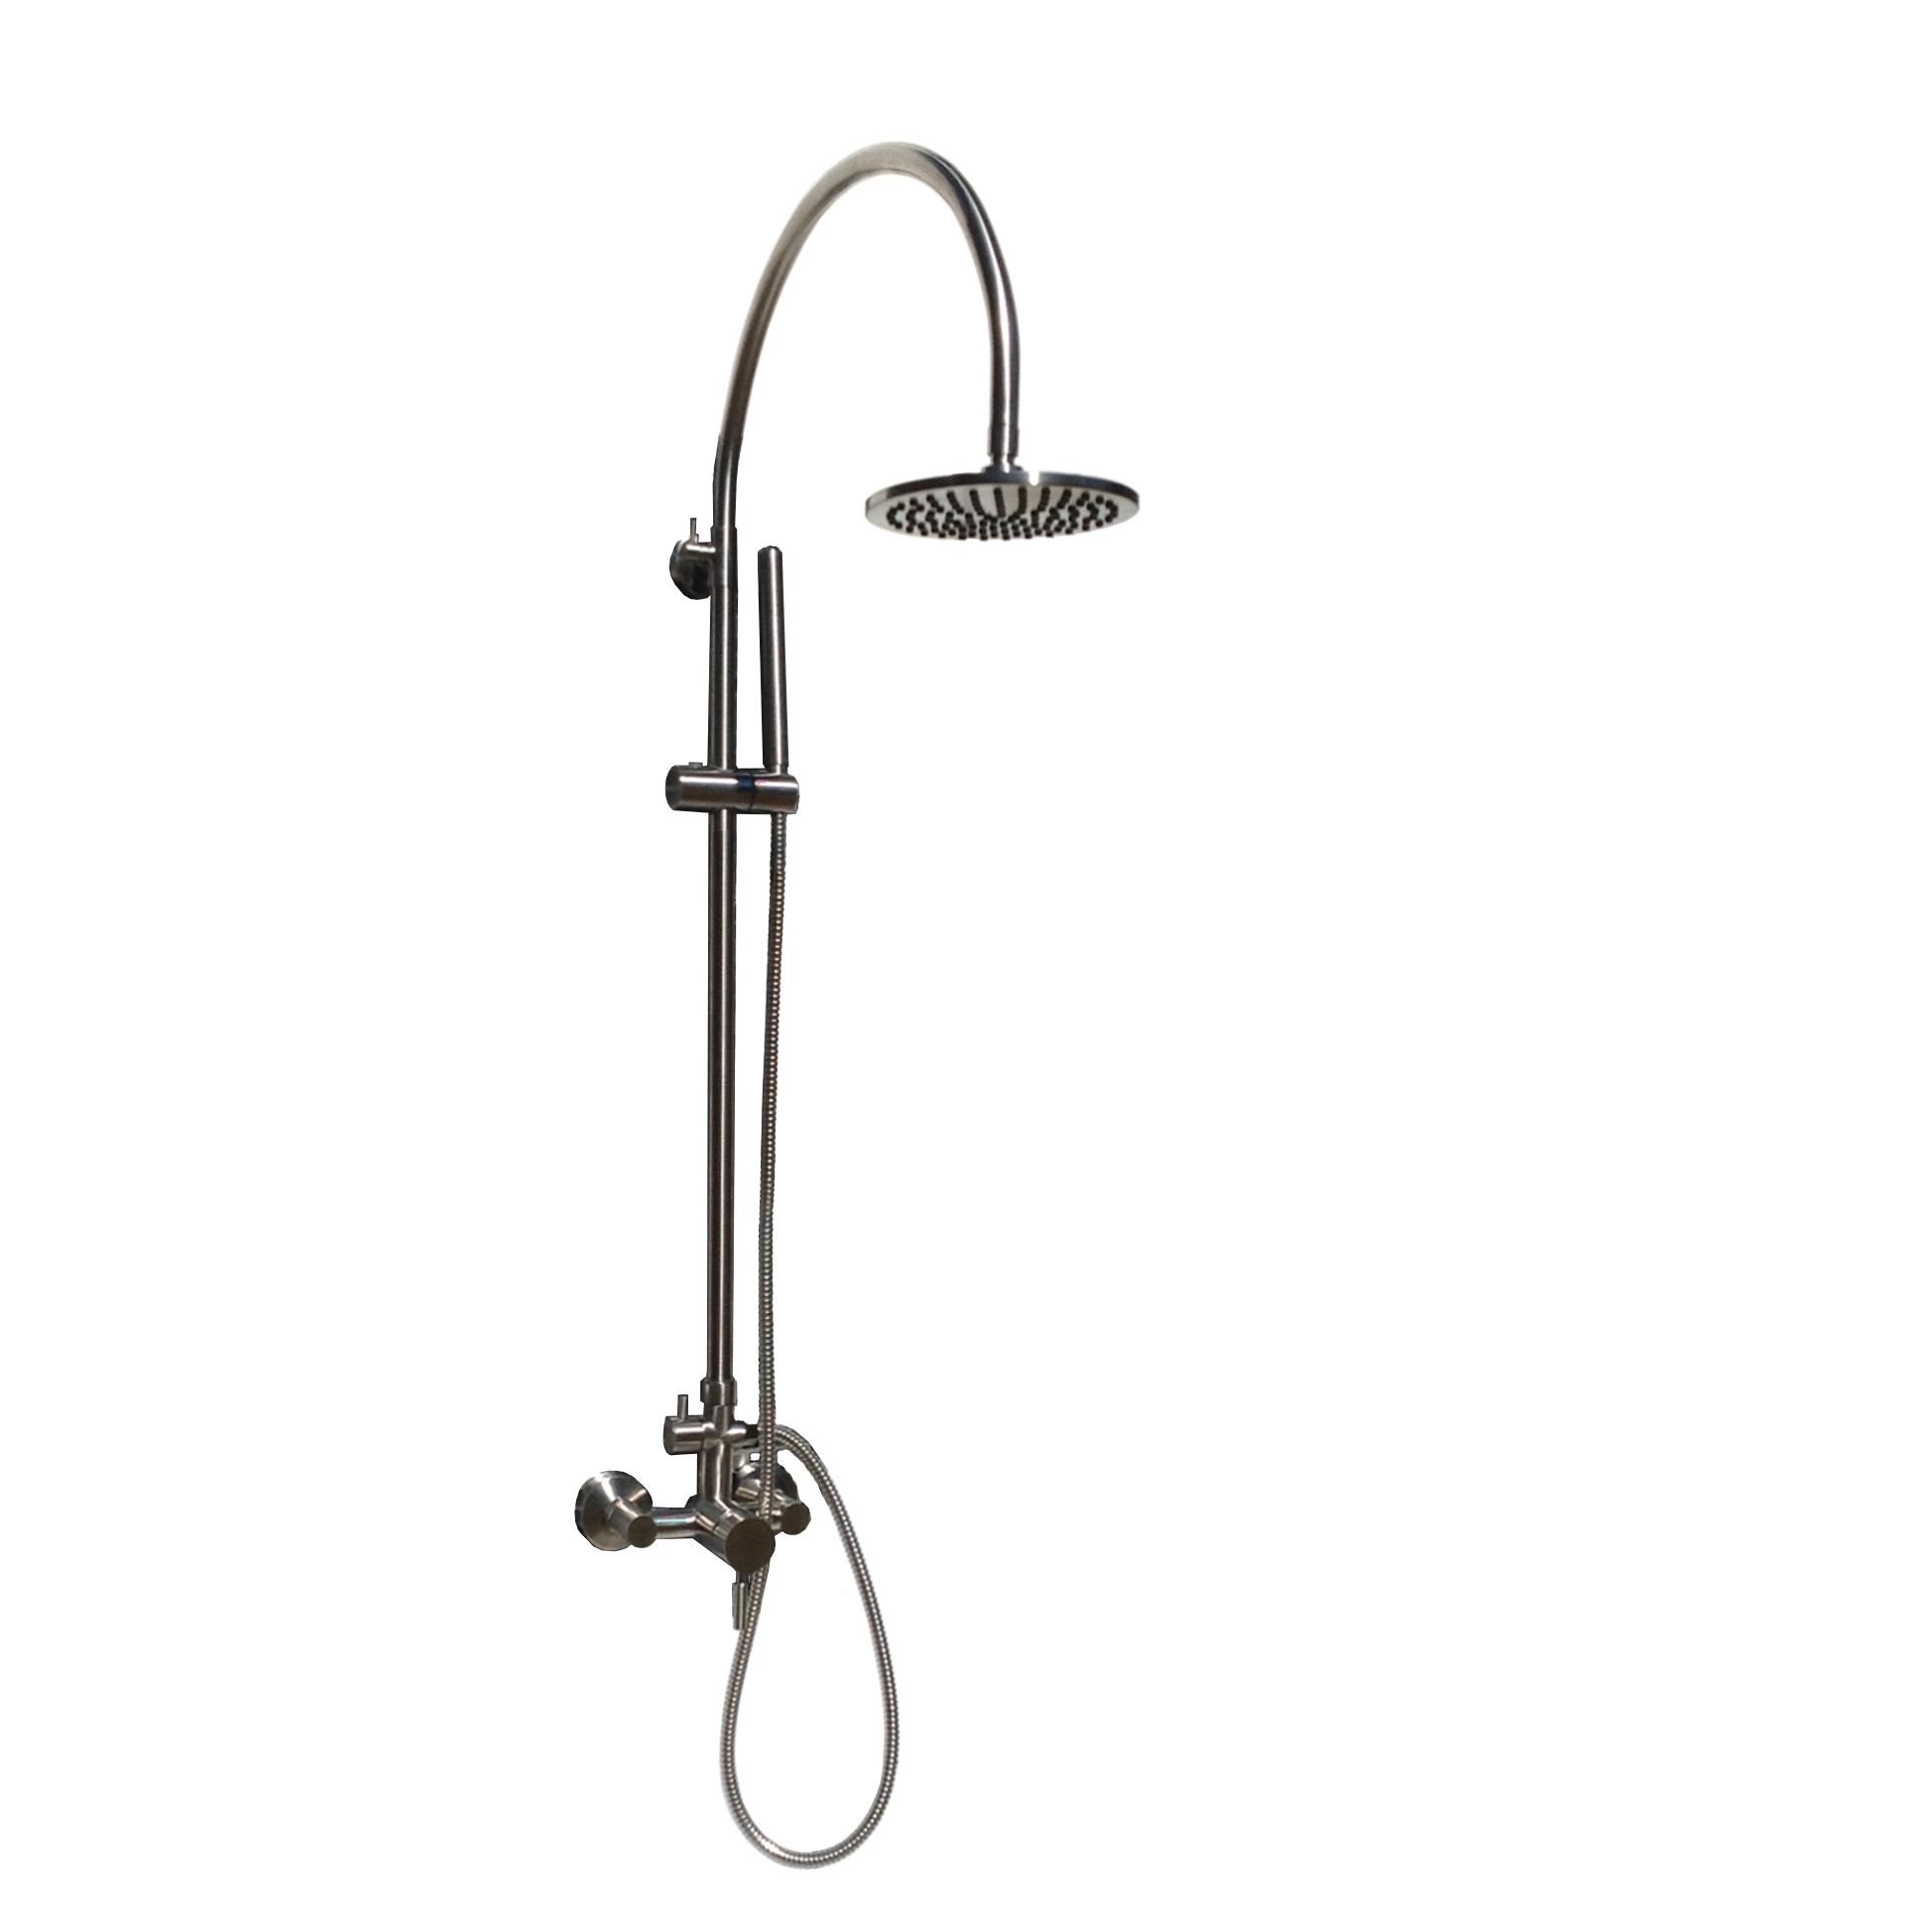 Stainless steel outdoor faucet model number sr